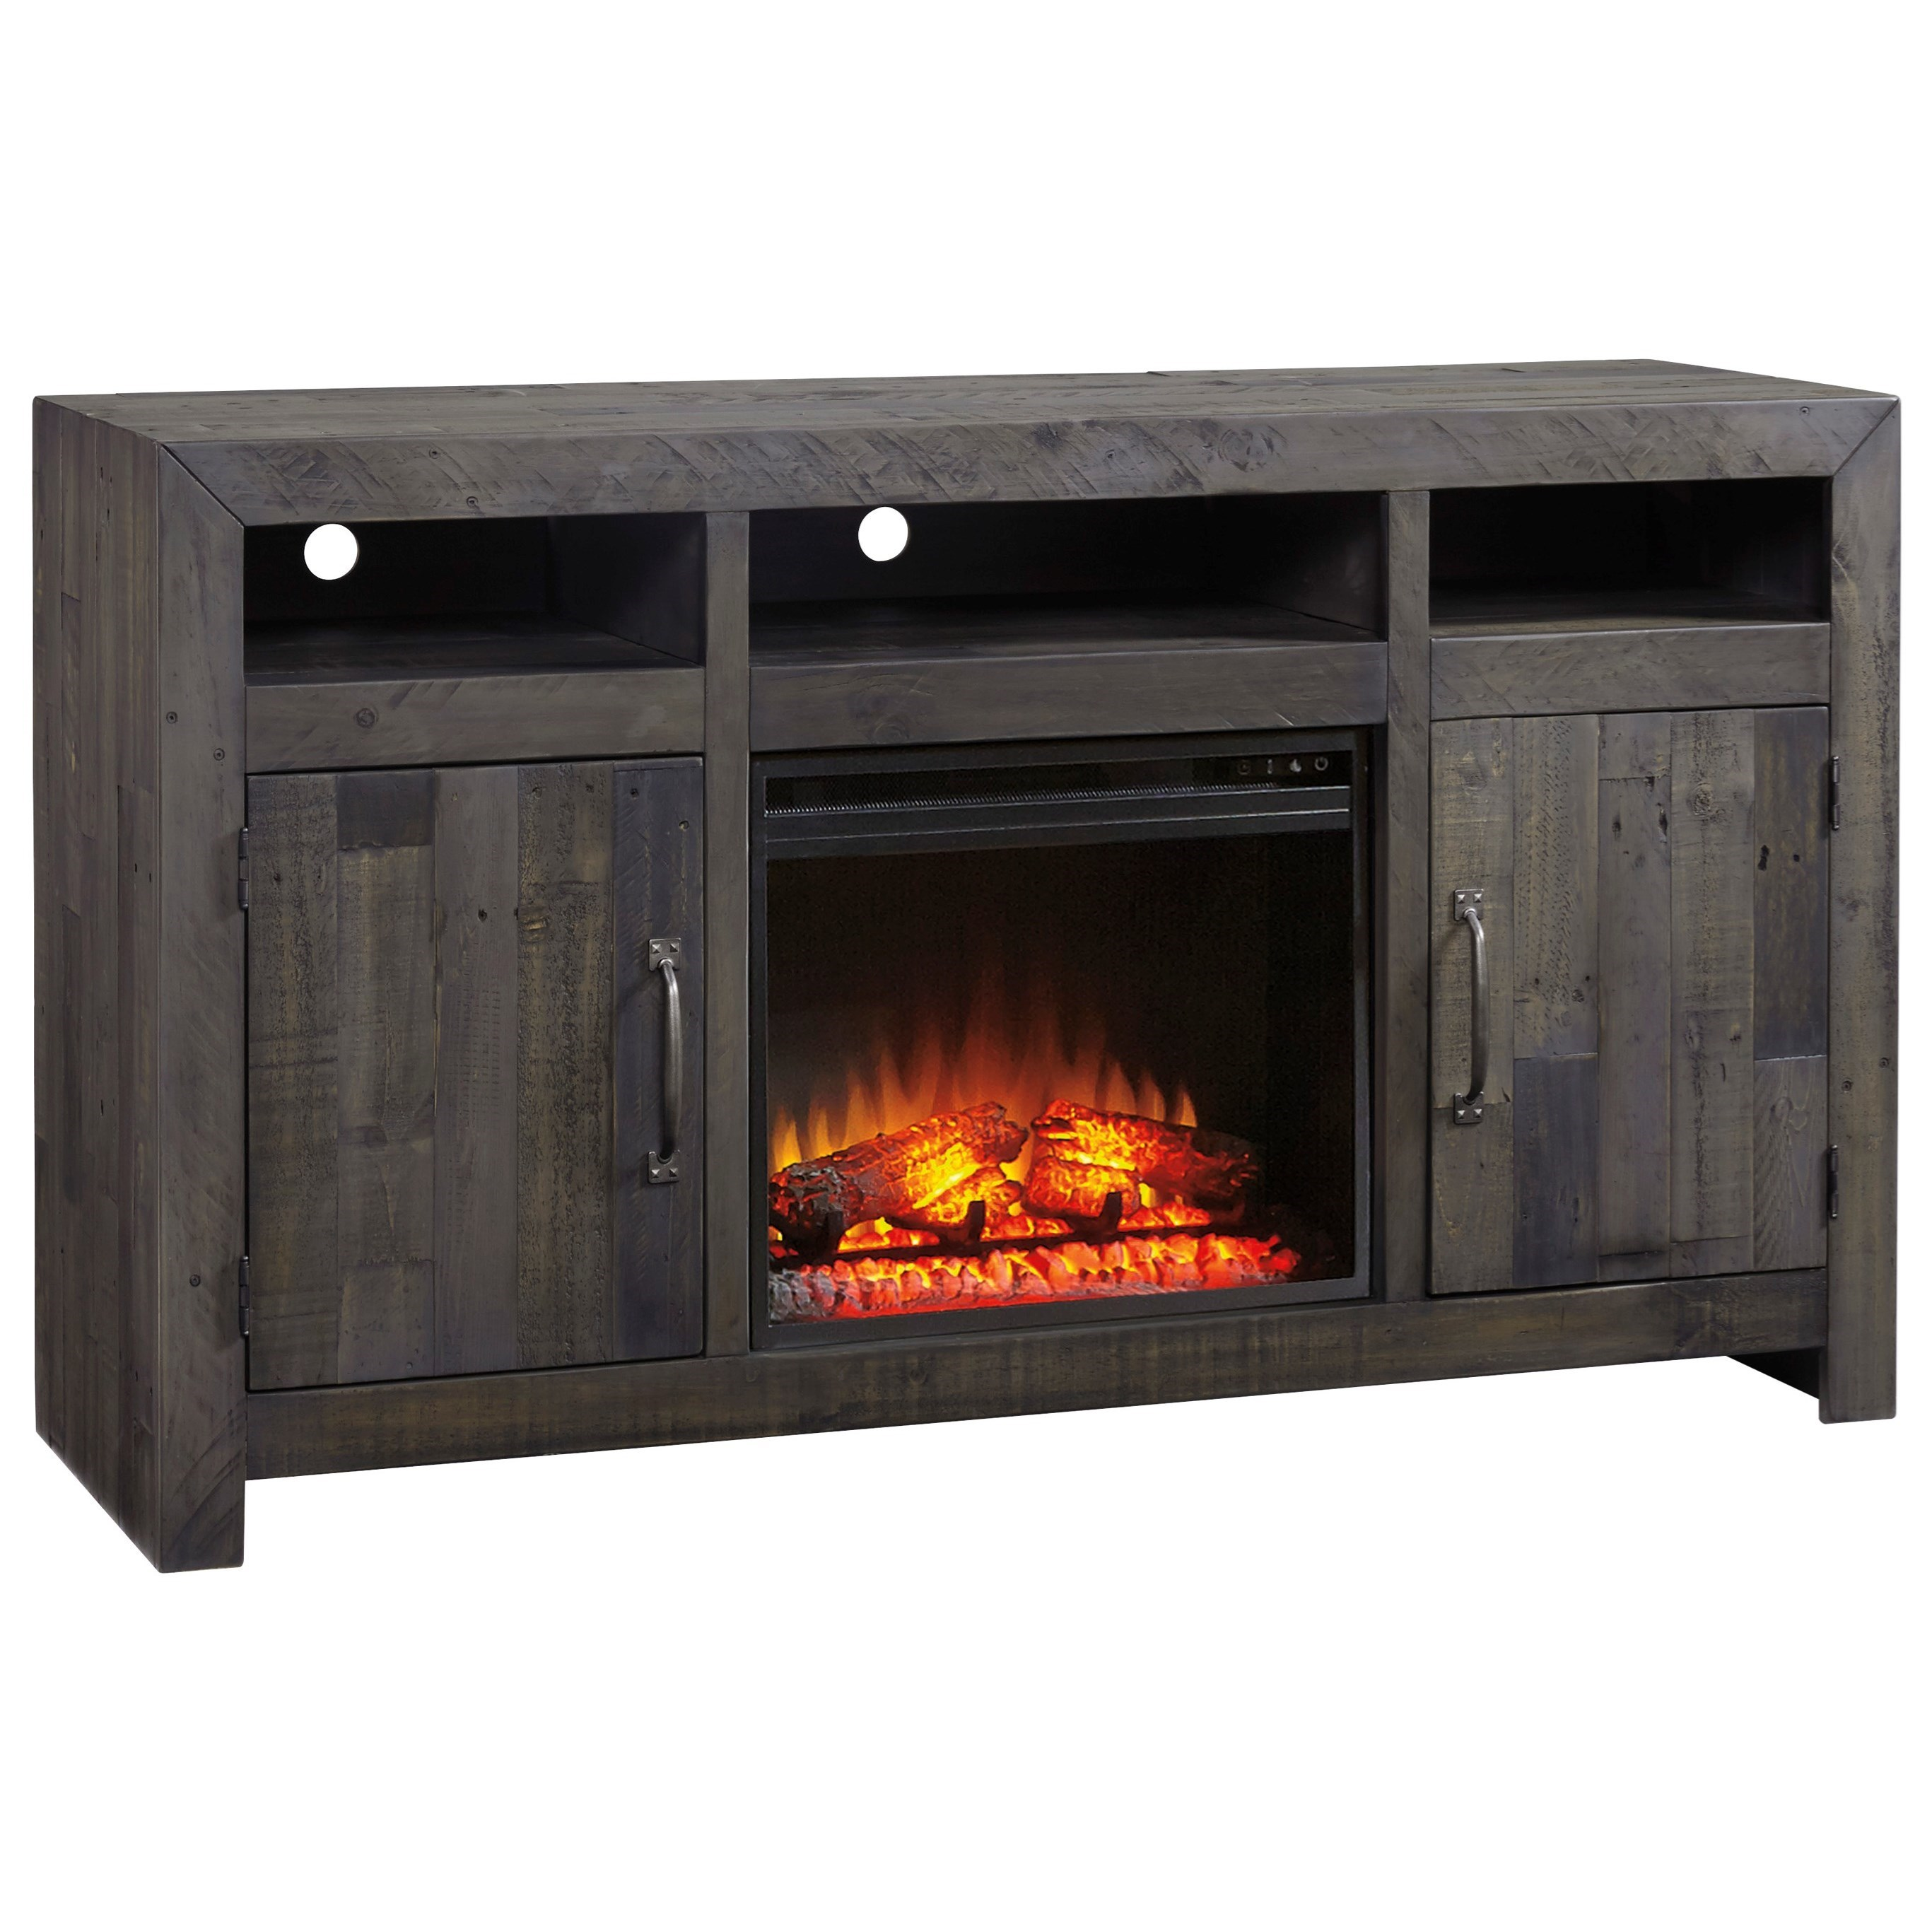 Mayflyn Large TV Stand with Fireplace Insert by Signature Design by Ashley at Northeast Factory Direct